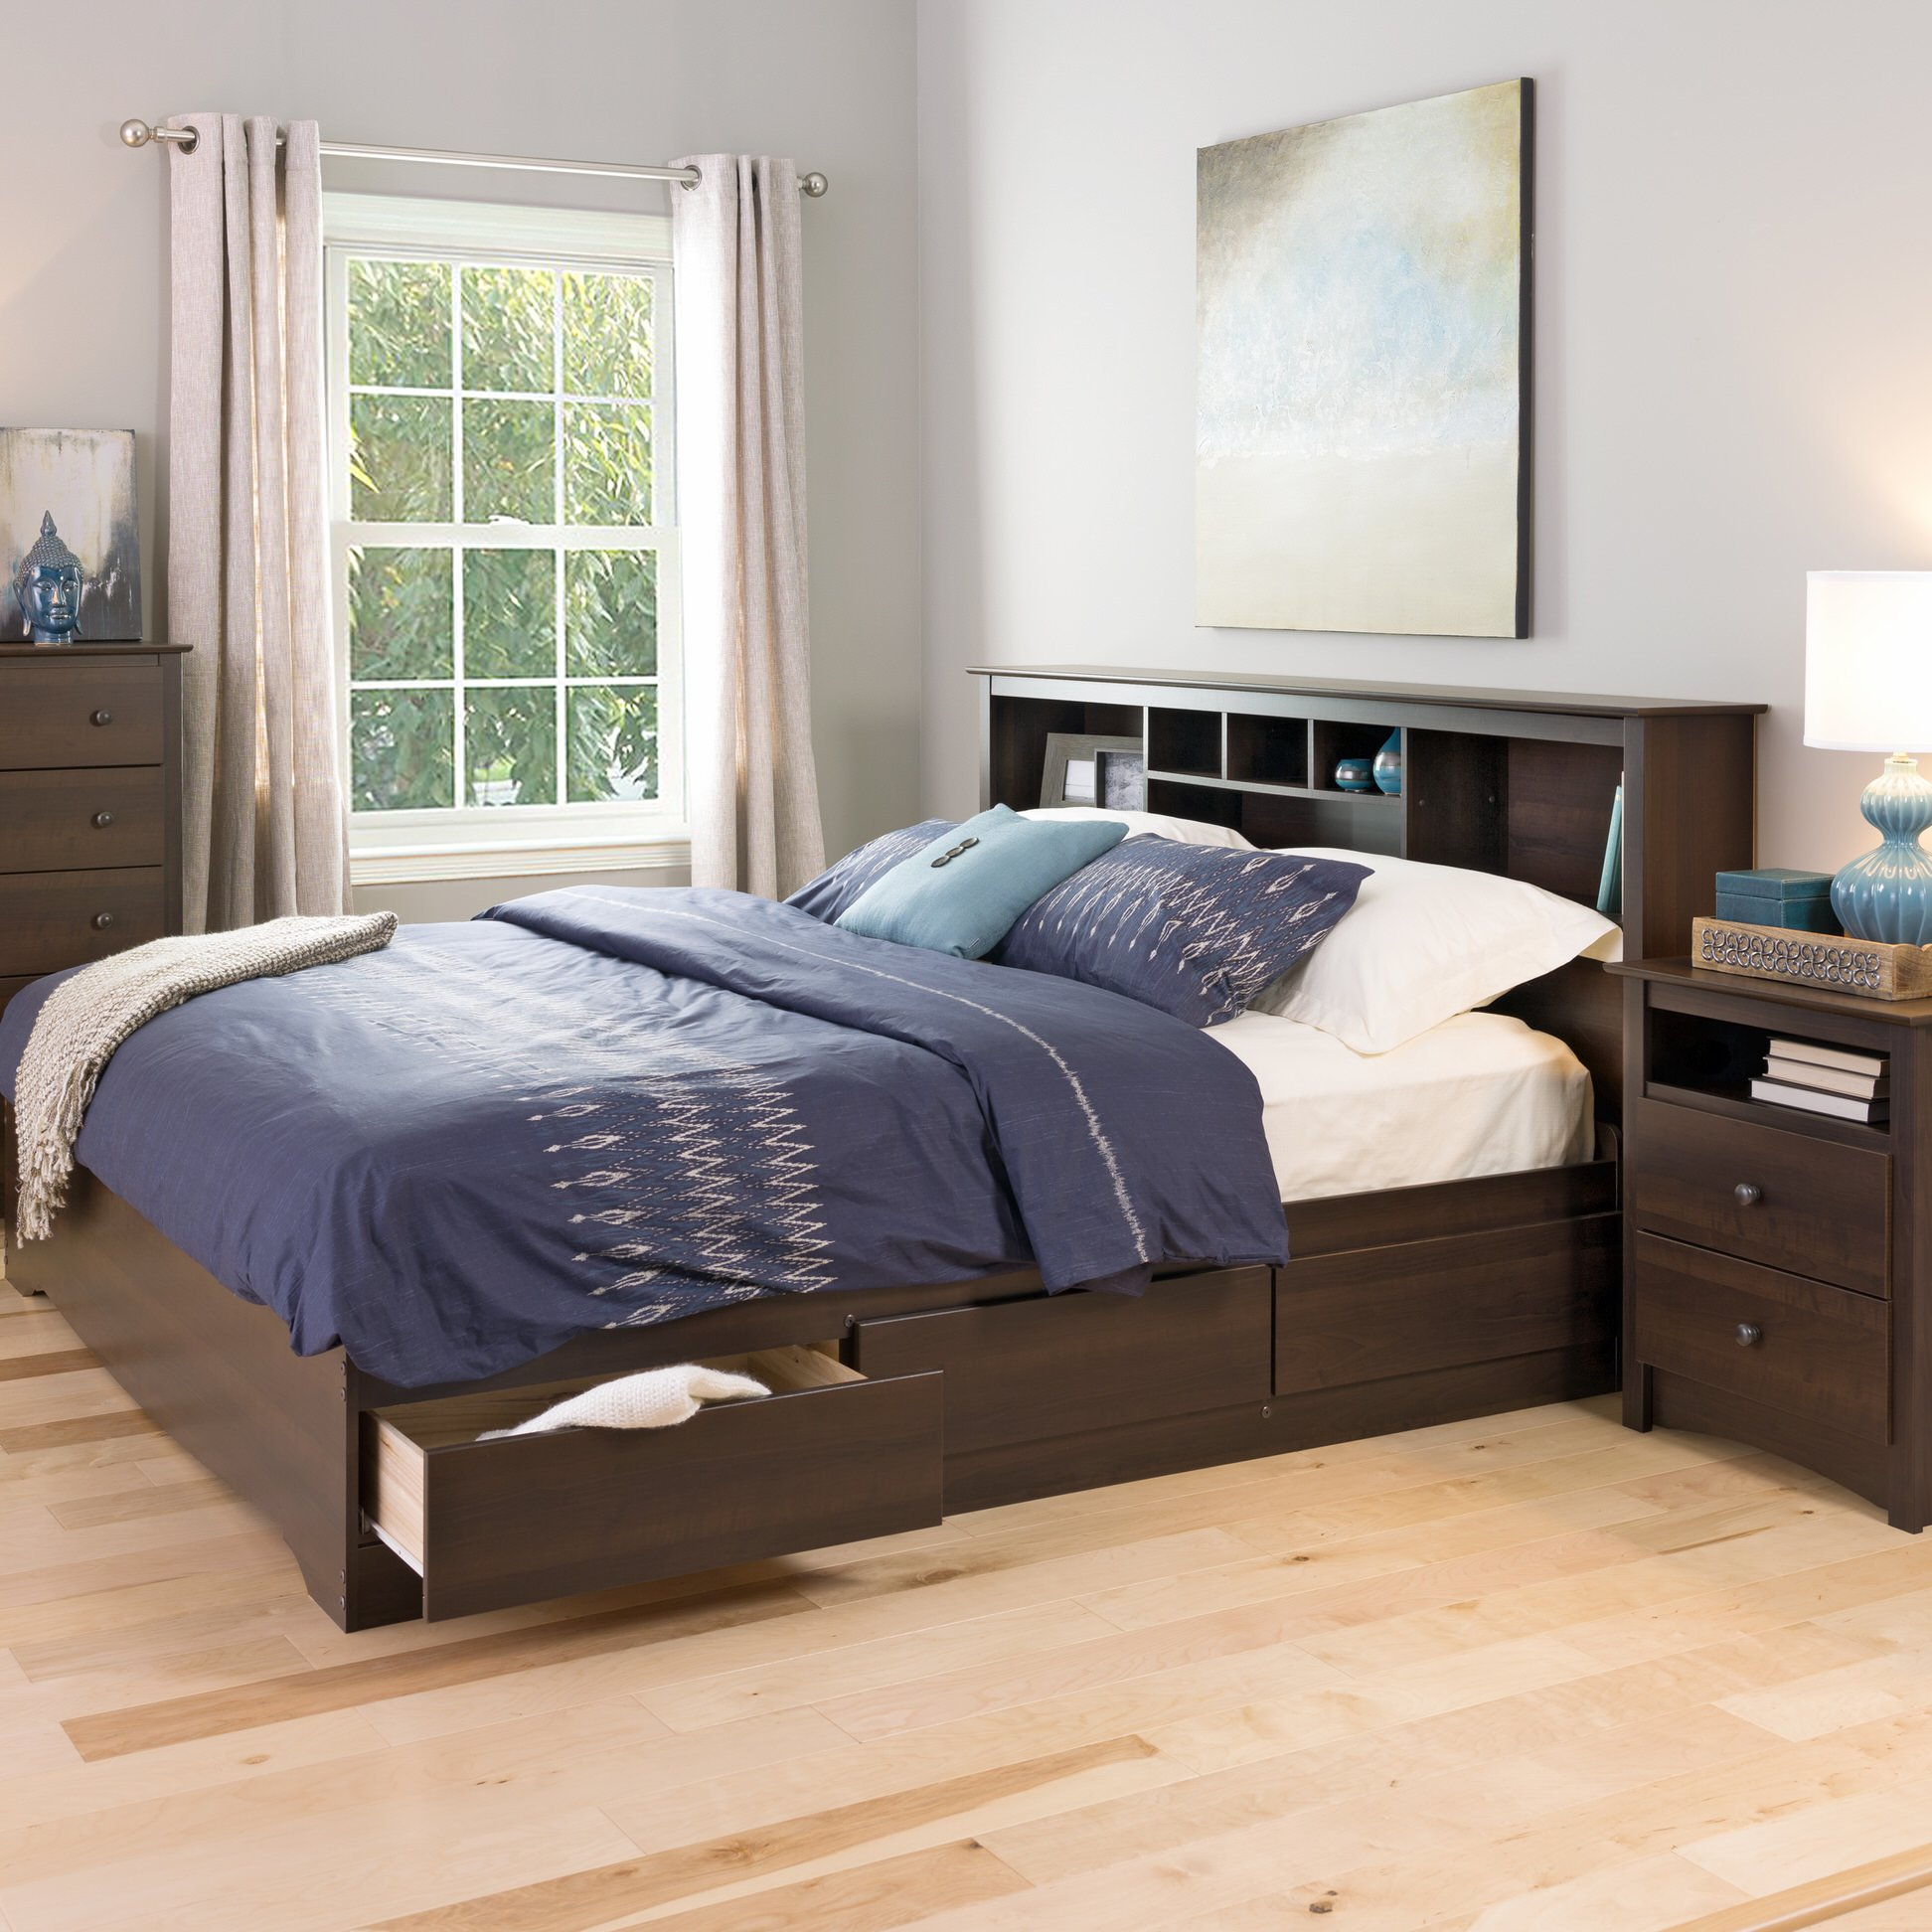 ashley espresso drawes size bed kira most mattress drawers frames plus healthy king wall and oak seen drawer storage contemporary for design gallery untreated painted on the bedroom underneath queen frame dark in wooden also brown with twin images beds wood grey floor varnished ideas